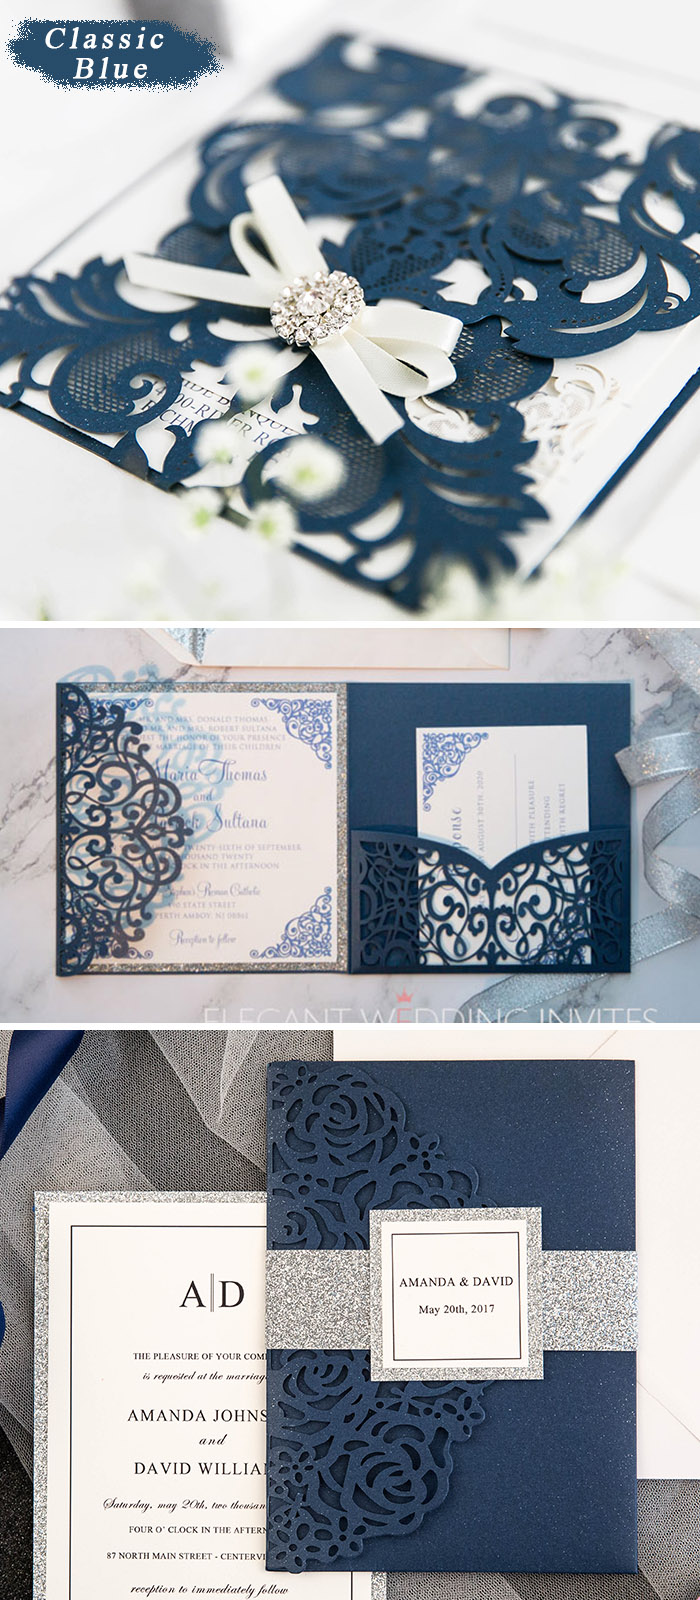 pantone classic blue laser cut wedding inviattions